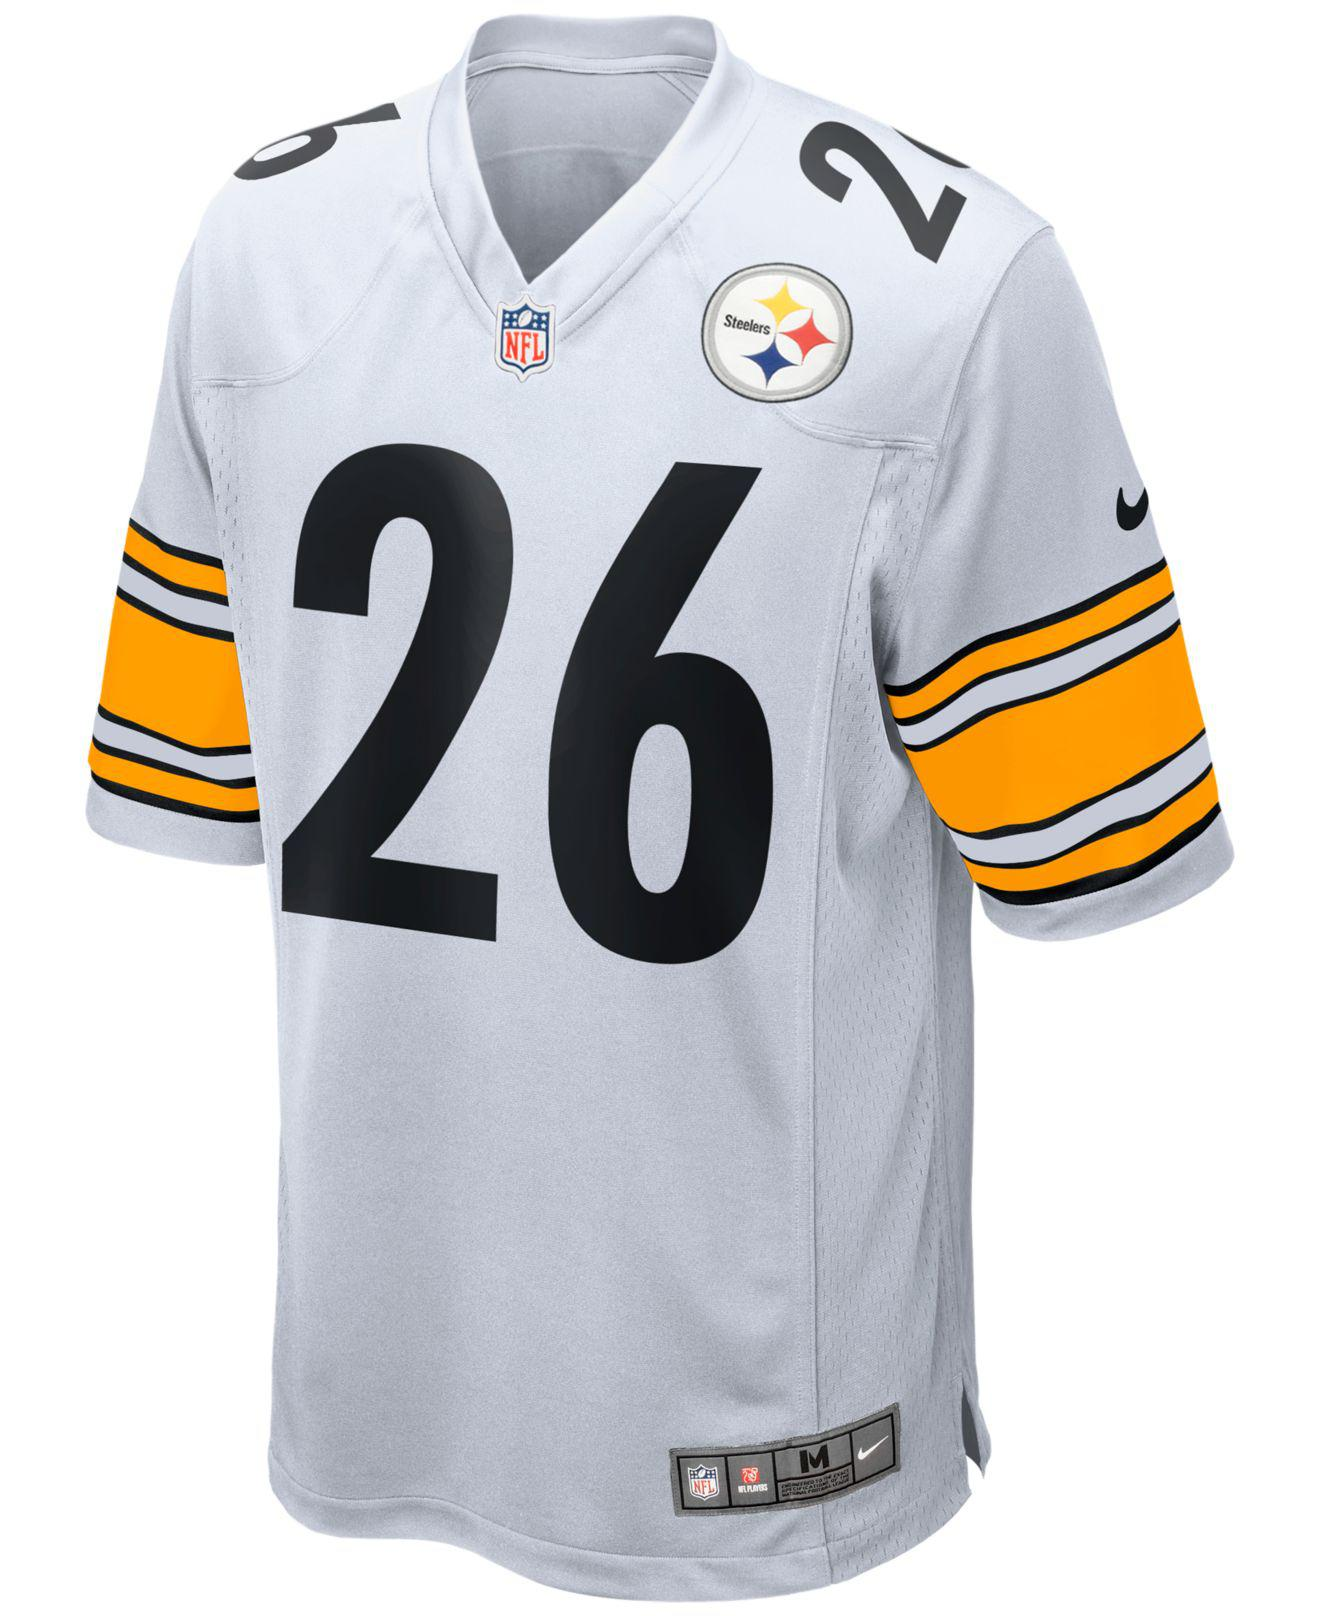 966e4fb7b ... 26 cddc8 10738 new arrivals lyst nike mens leveon bell pittsburgh  steelers game jersey in white for men 4f842 ...